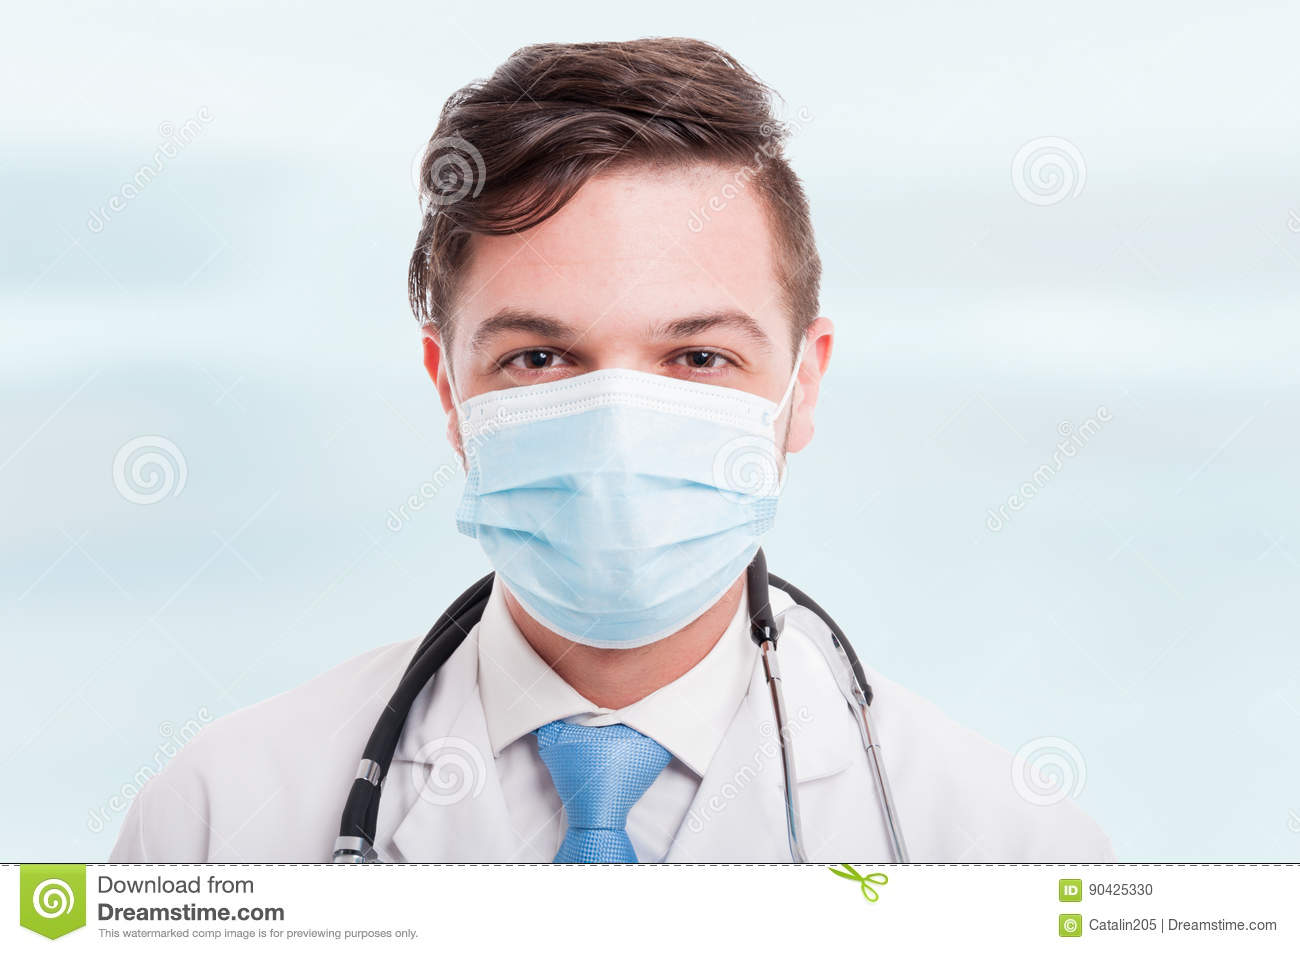 Doctor Stock Photo Handsome - Mask Of Male With Portrait Image